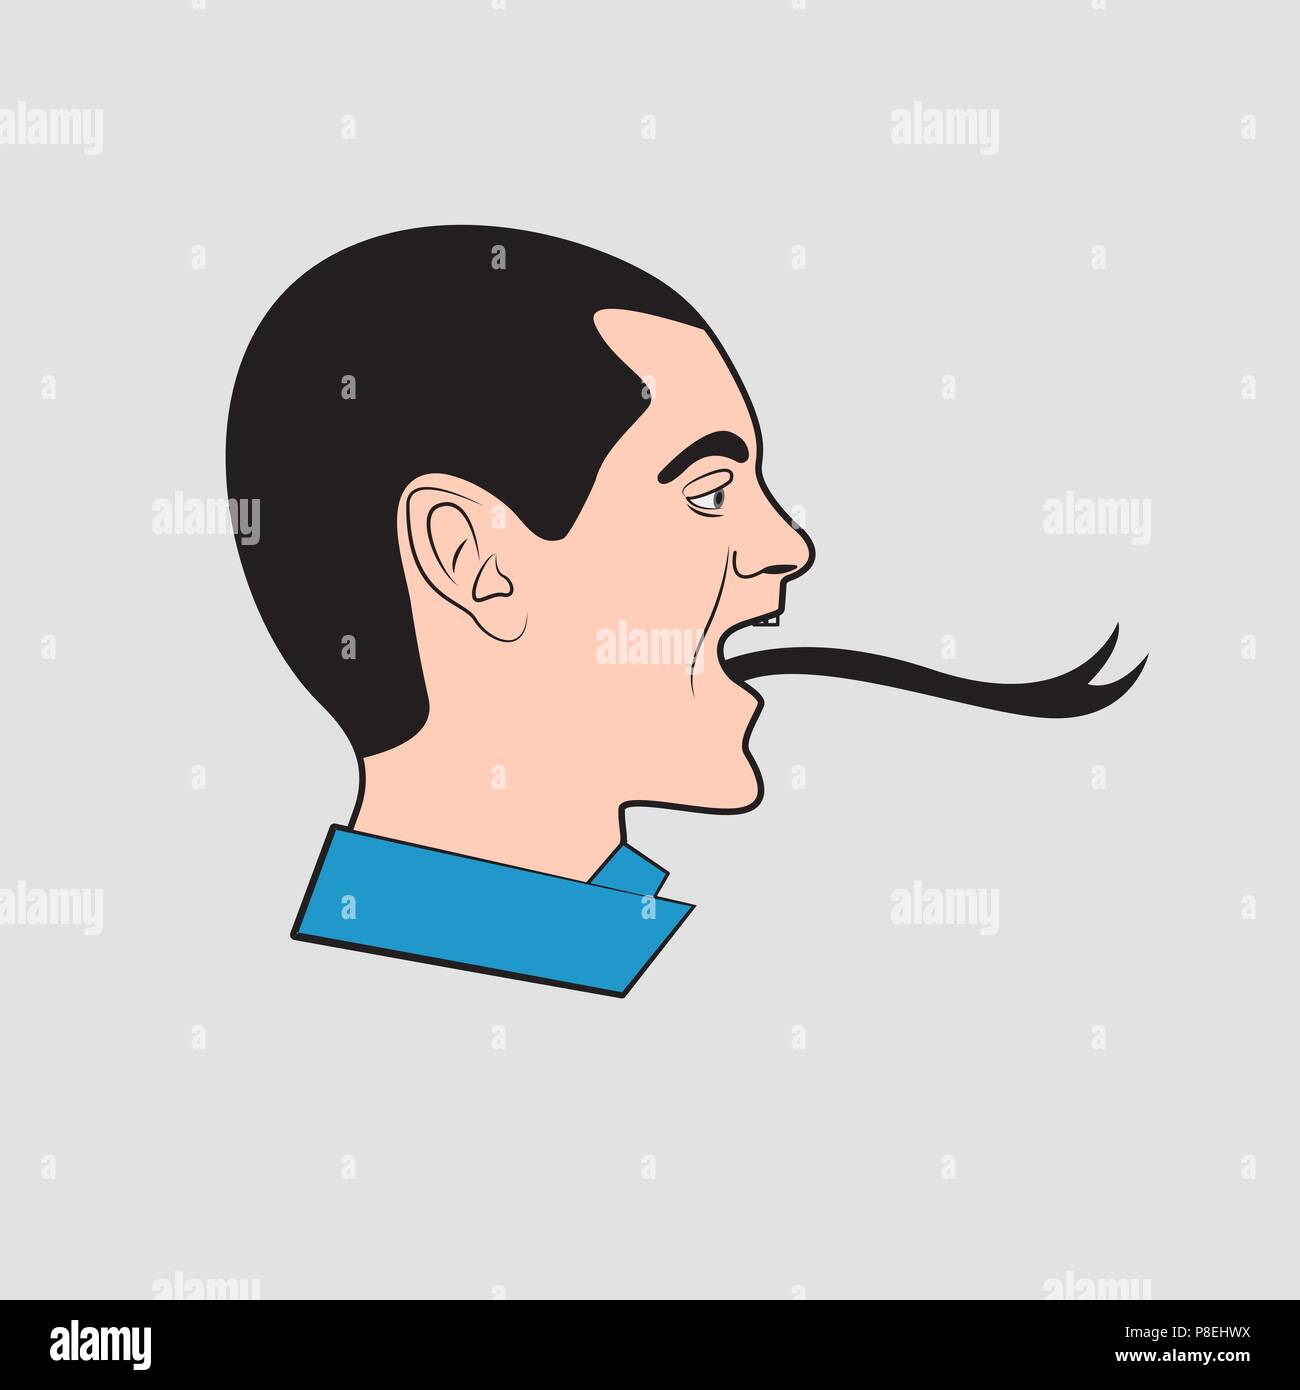 man with snake tongue Stock Vector